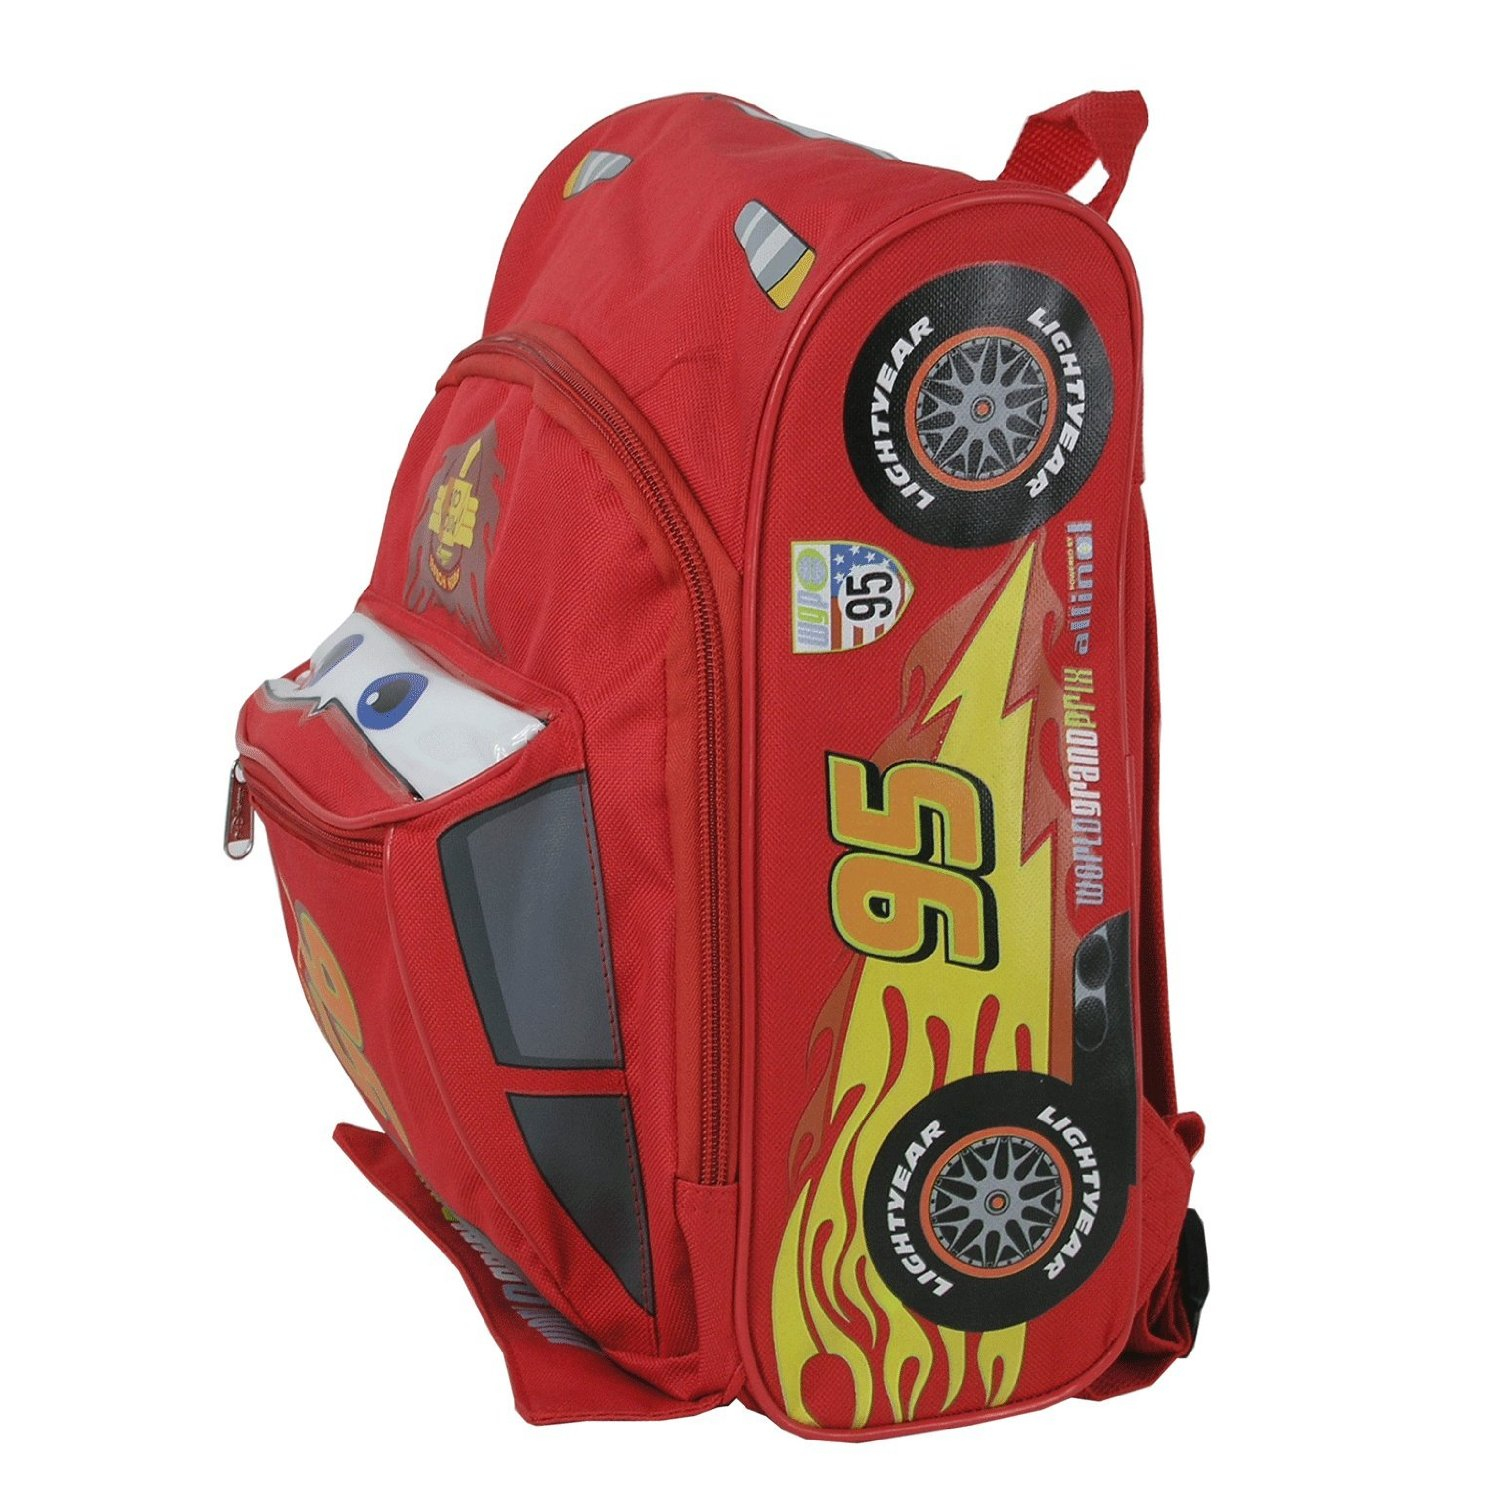 "Small Backpack - Disney - Cars 2 - Lightning Mcqueen 12"" New Book Bag 603670"